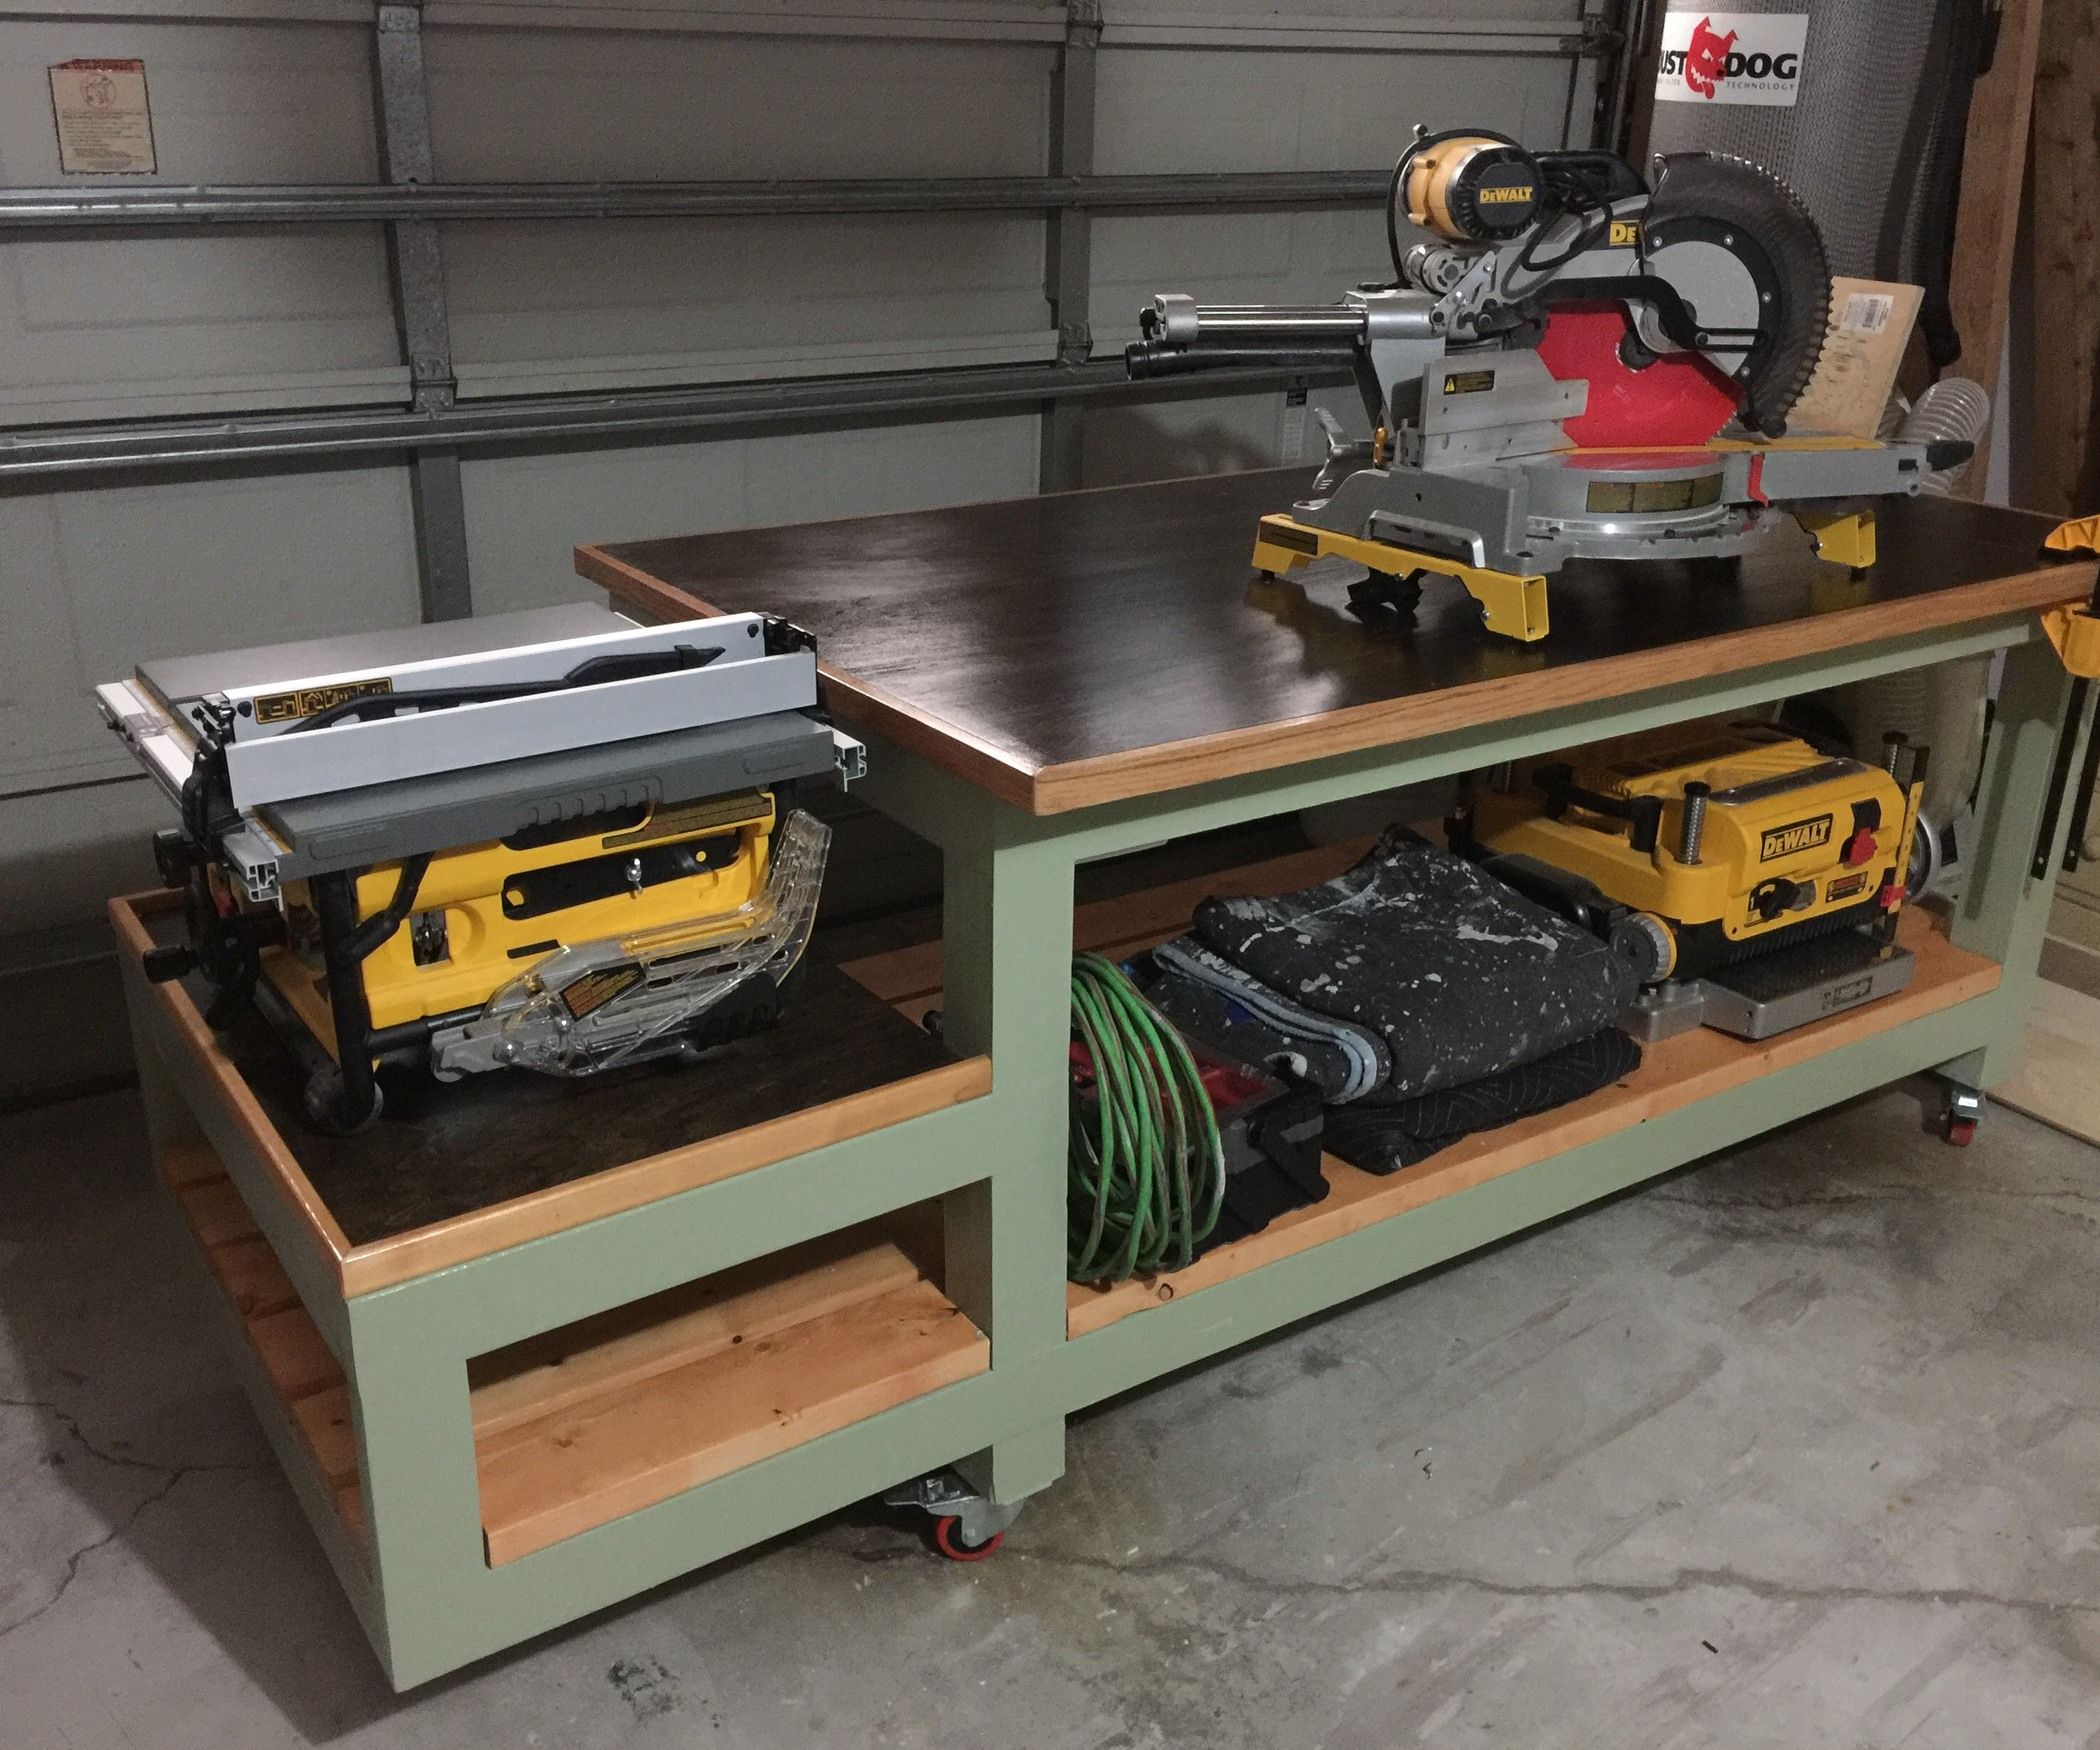 Tool Bench Organization Ideas 28 Images 25 Best Ideas